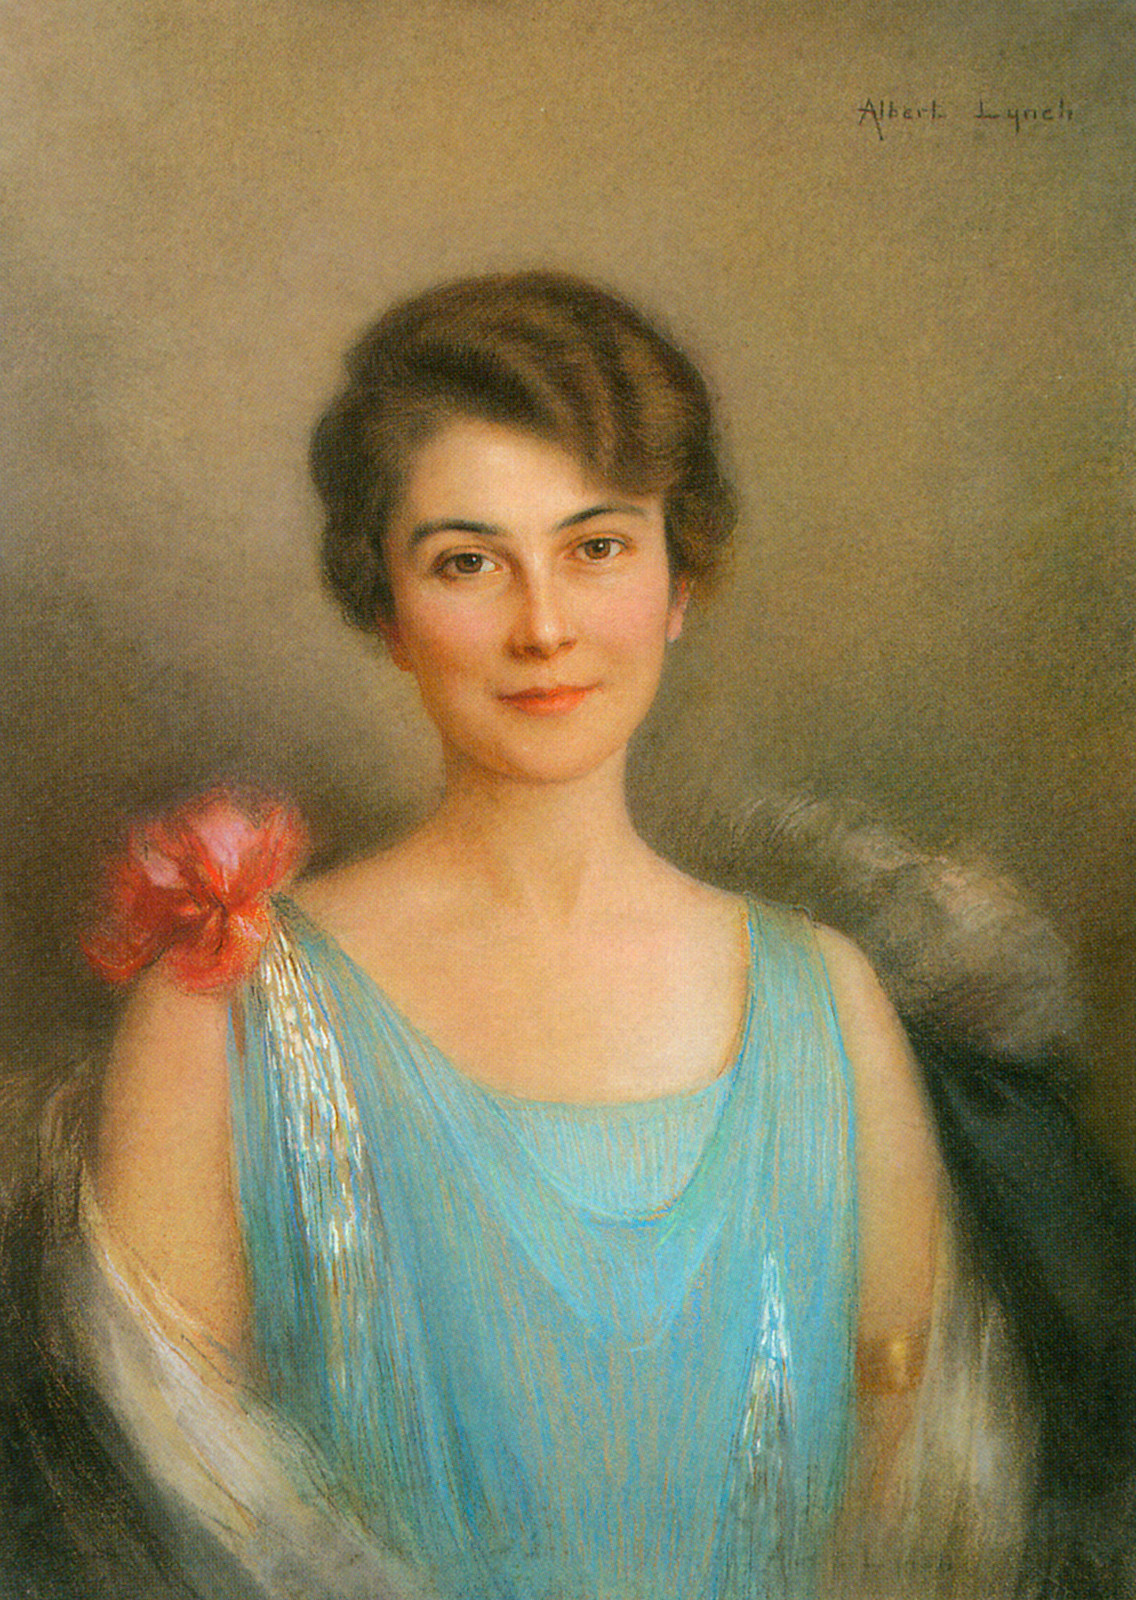 Portrait Of A Lady In Blue by Albert Lynch